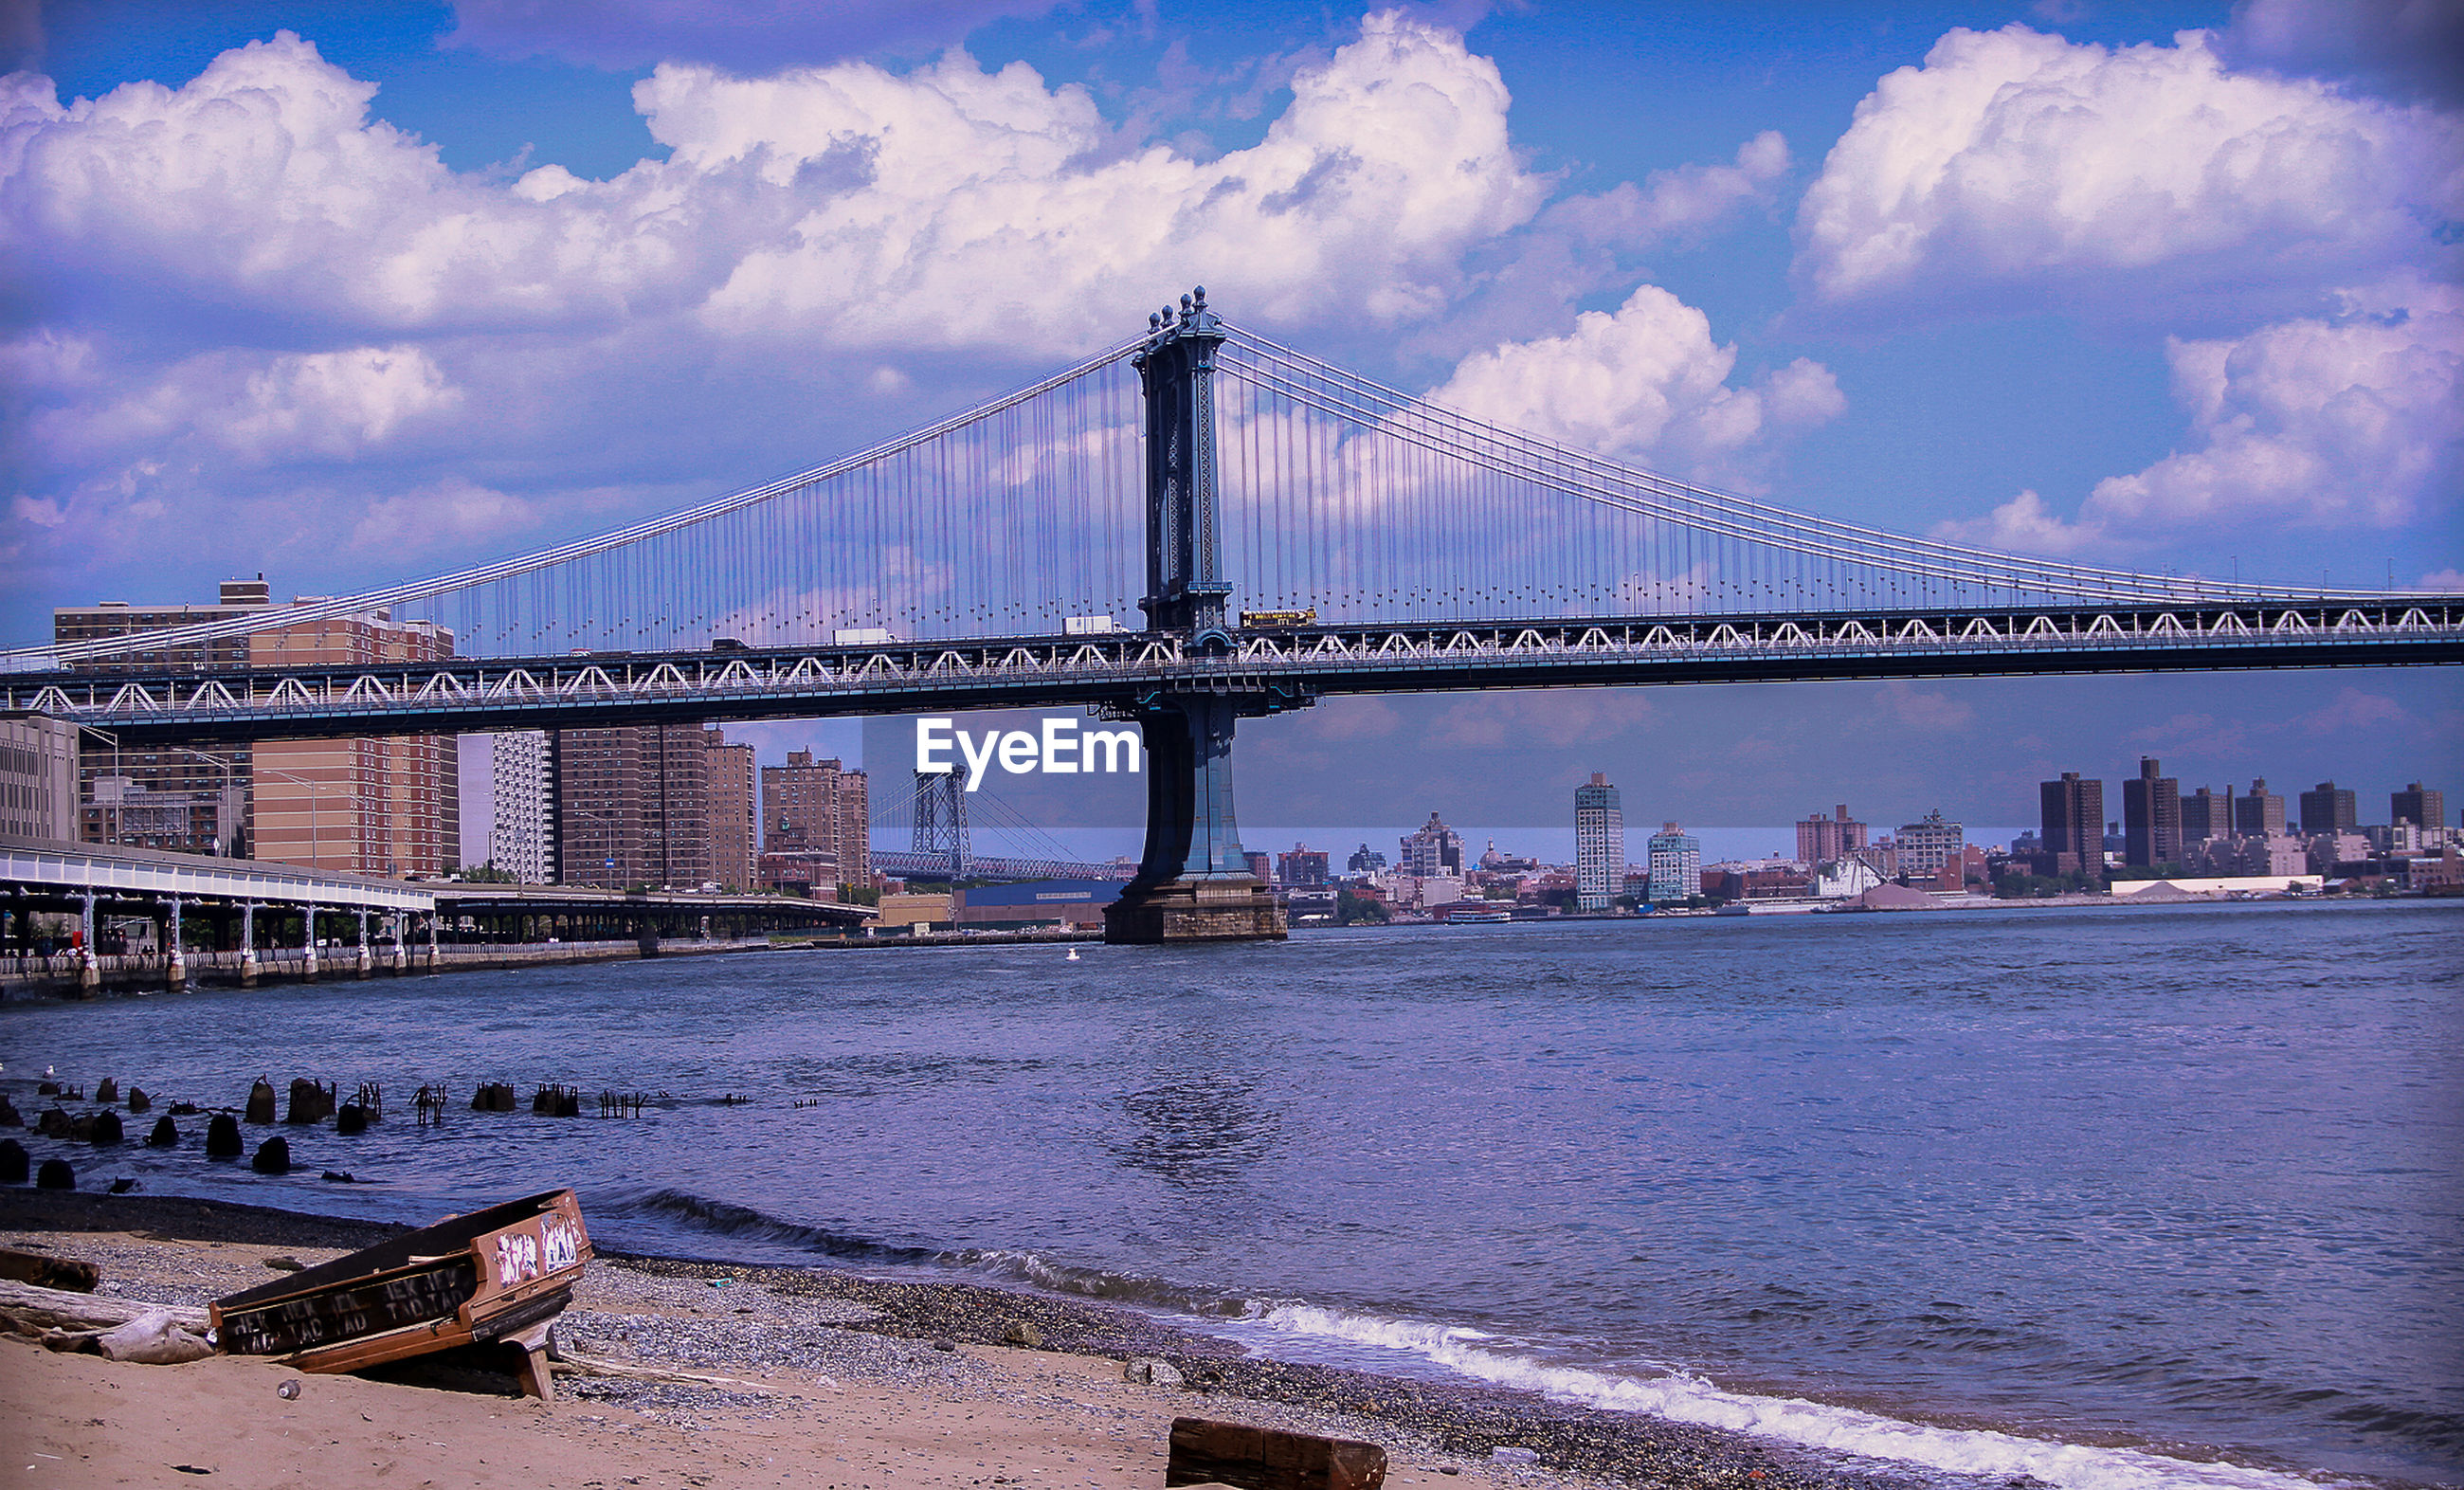 Old abandoned piano by manhattan bridge and river against cloudy sky in city